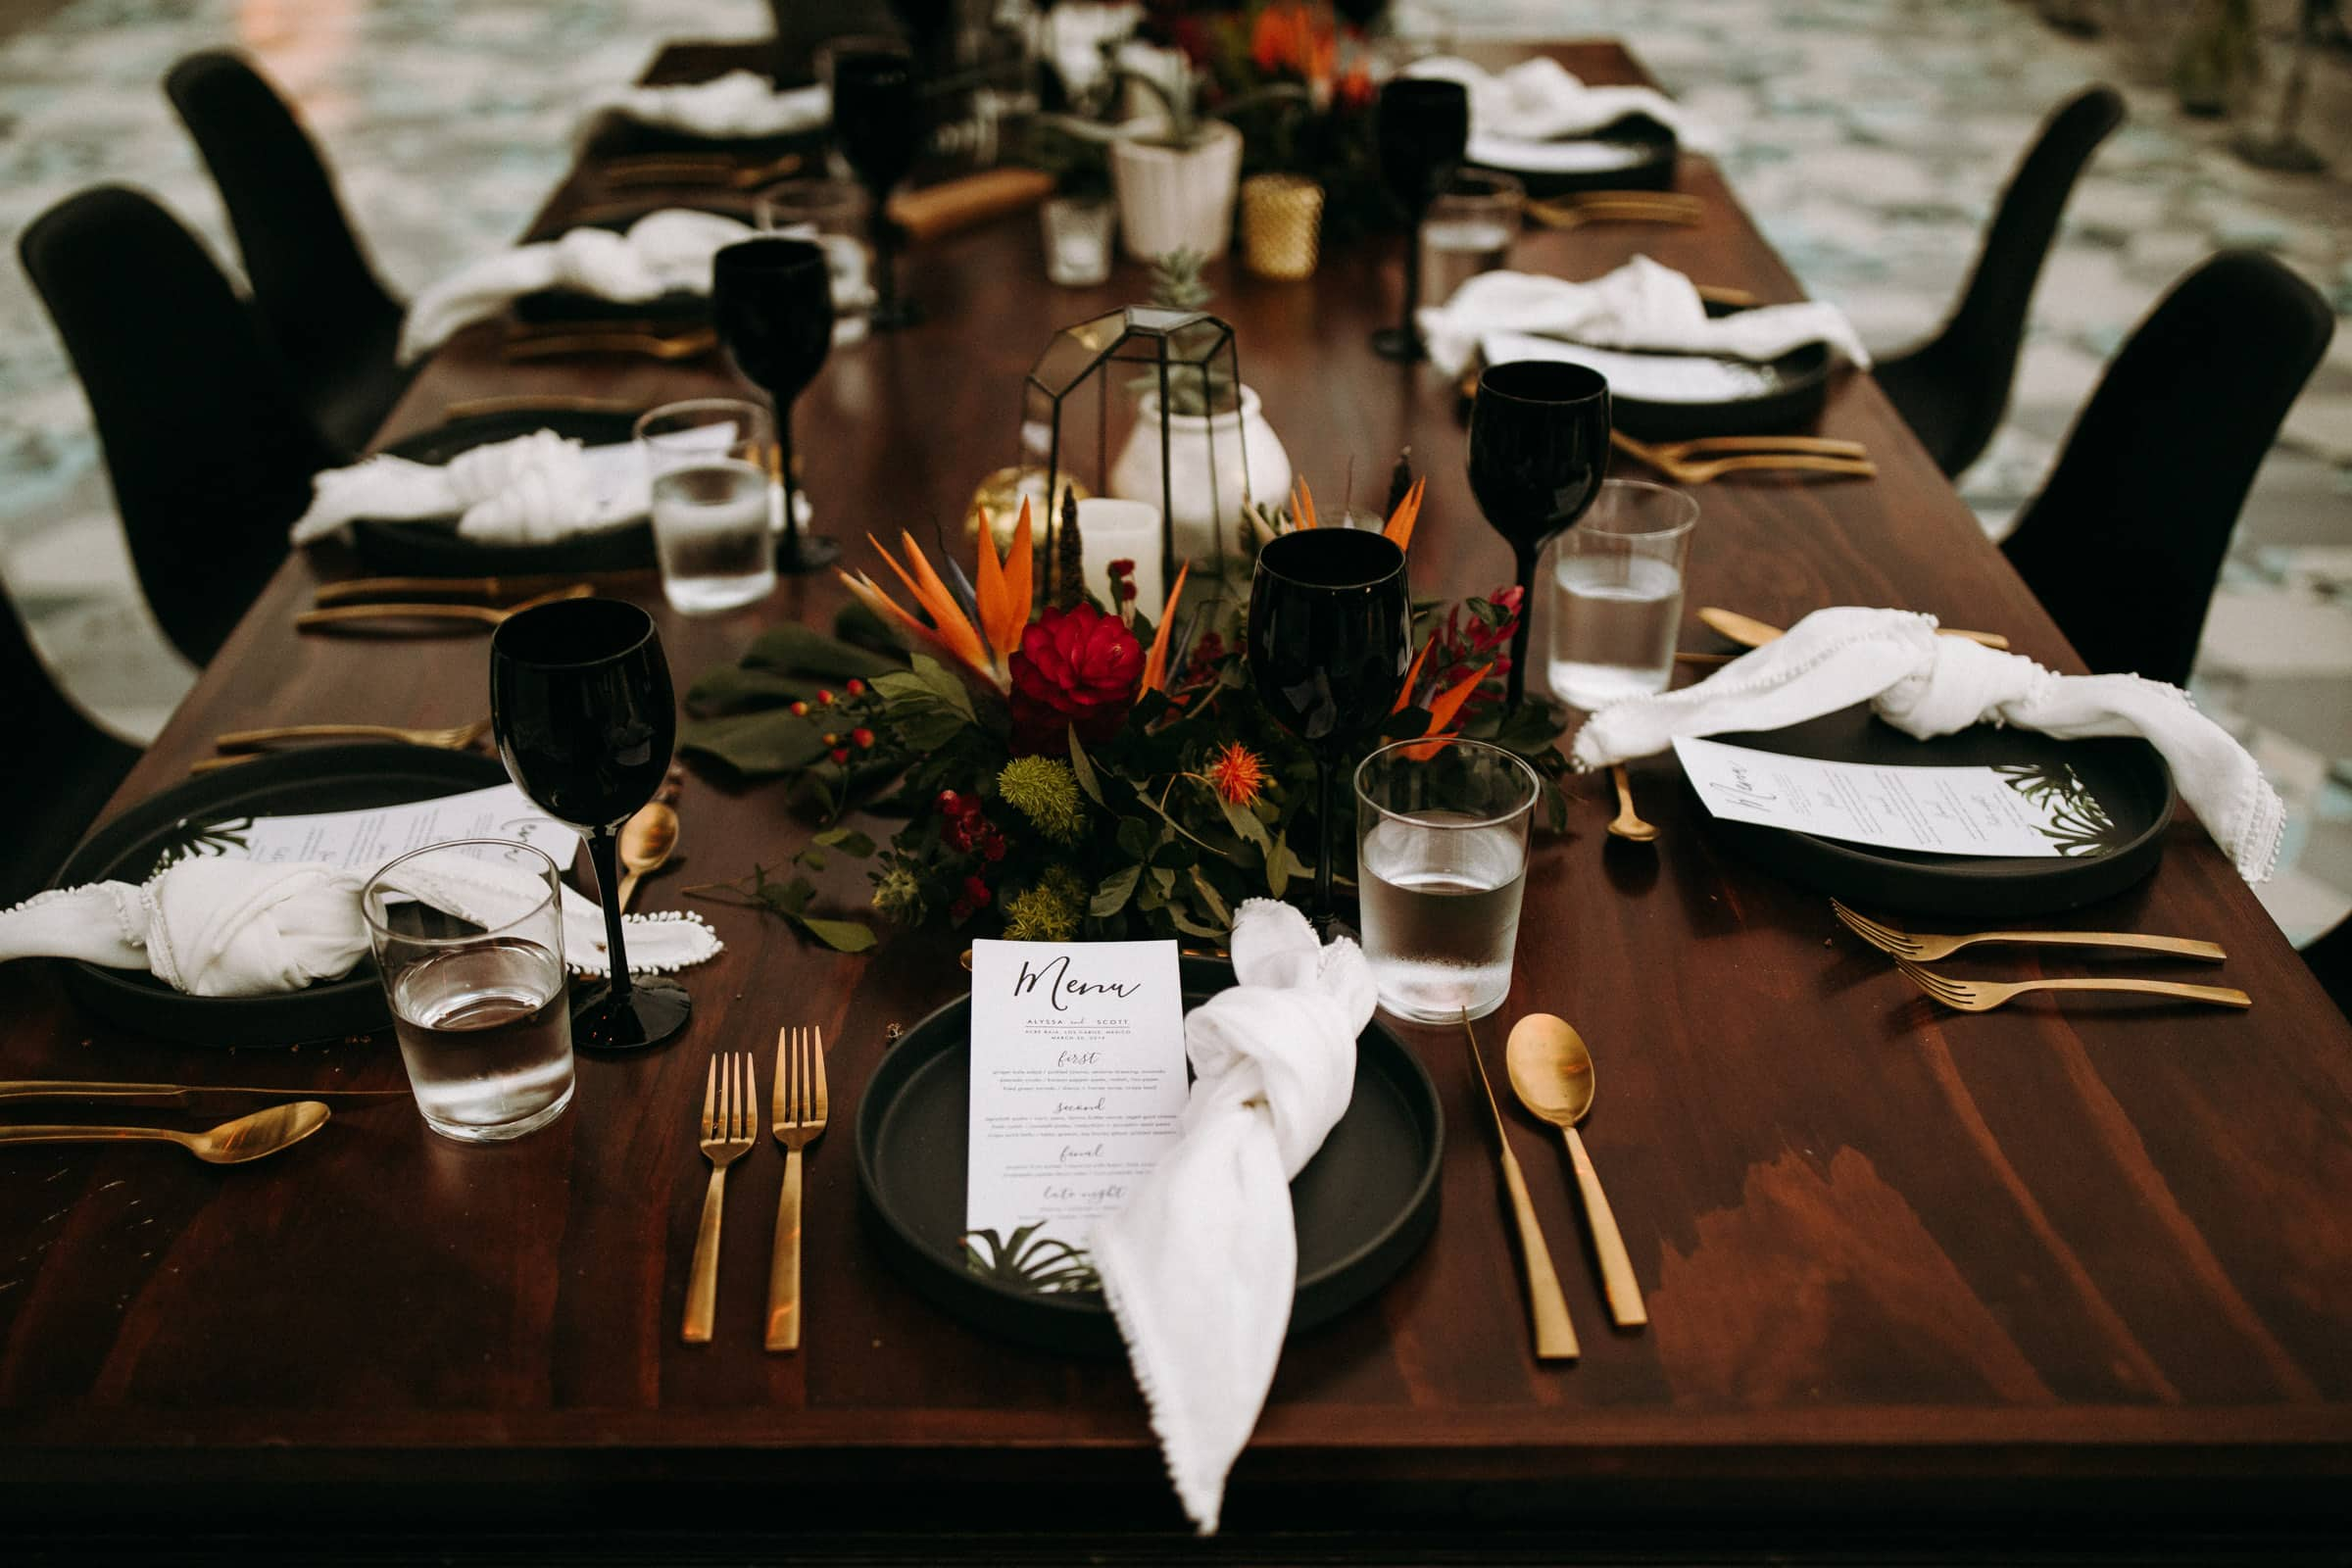 A closeup shows the acre baja table set up.